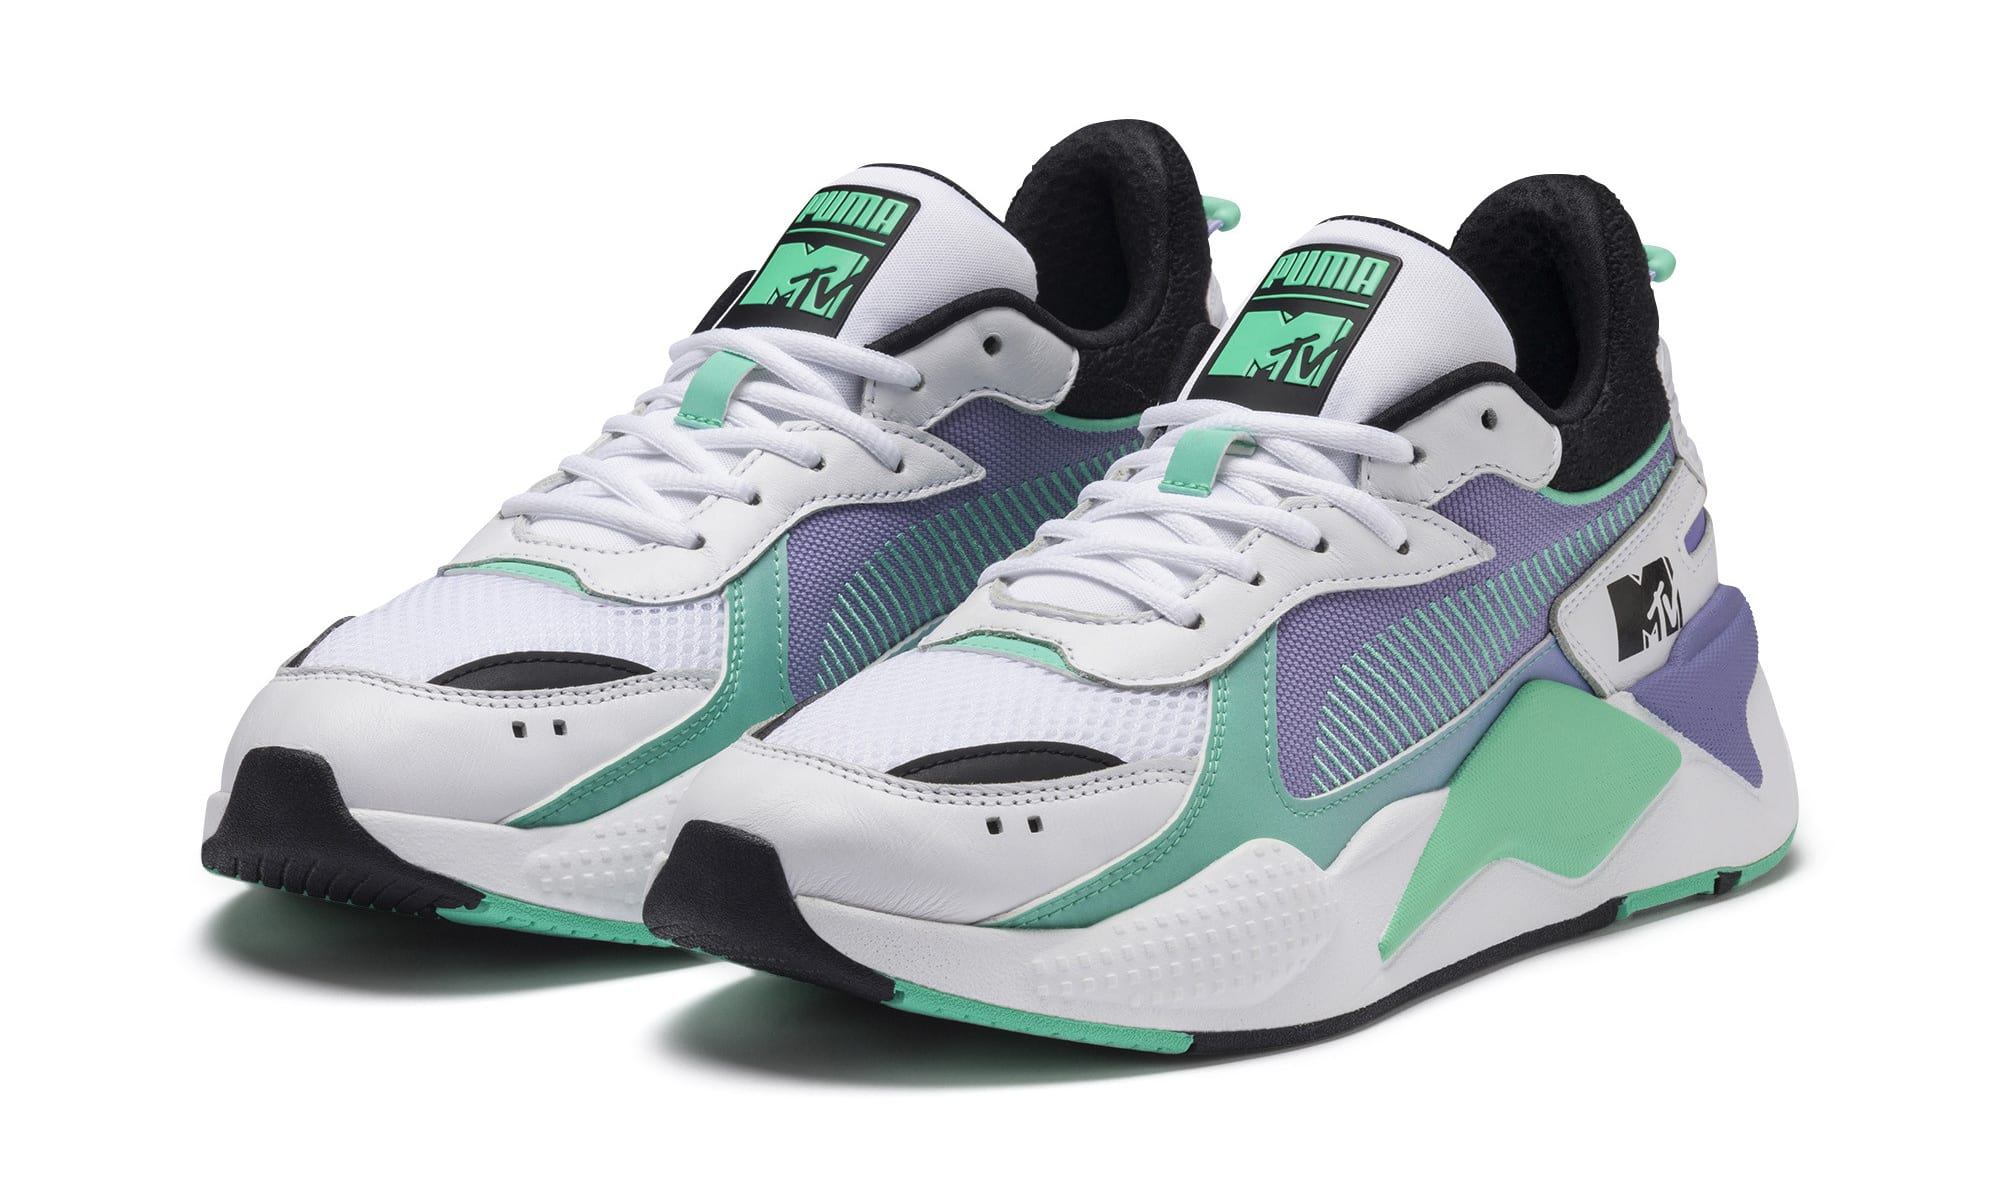 MTV x Puma RS-X 'Puma White/Sweet Lavender' 370407-01 (Pair)